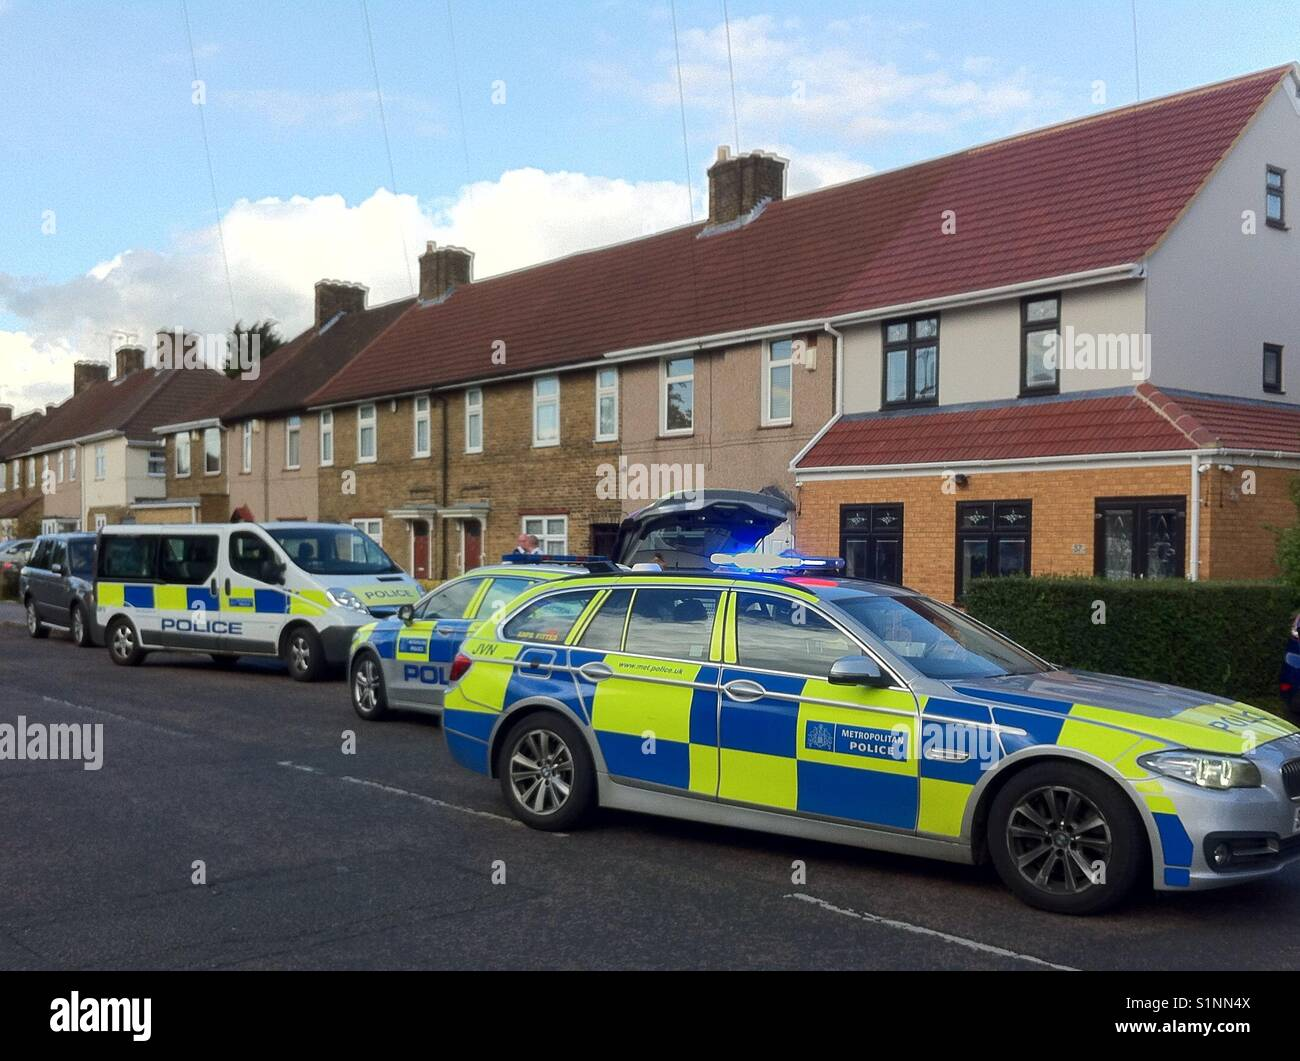 Metropolitan police cars attending a crime scene, on a residential road, dagenham, London, uk, 2017 - Stock Image